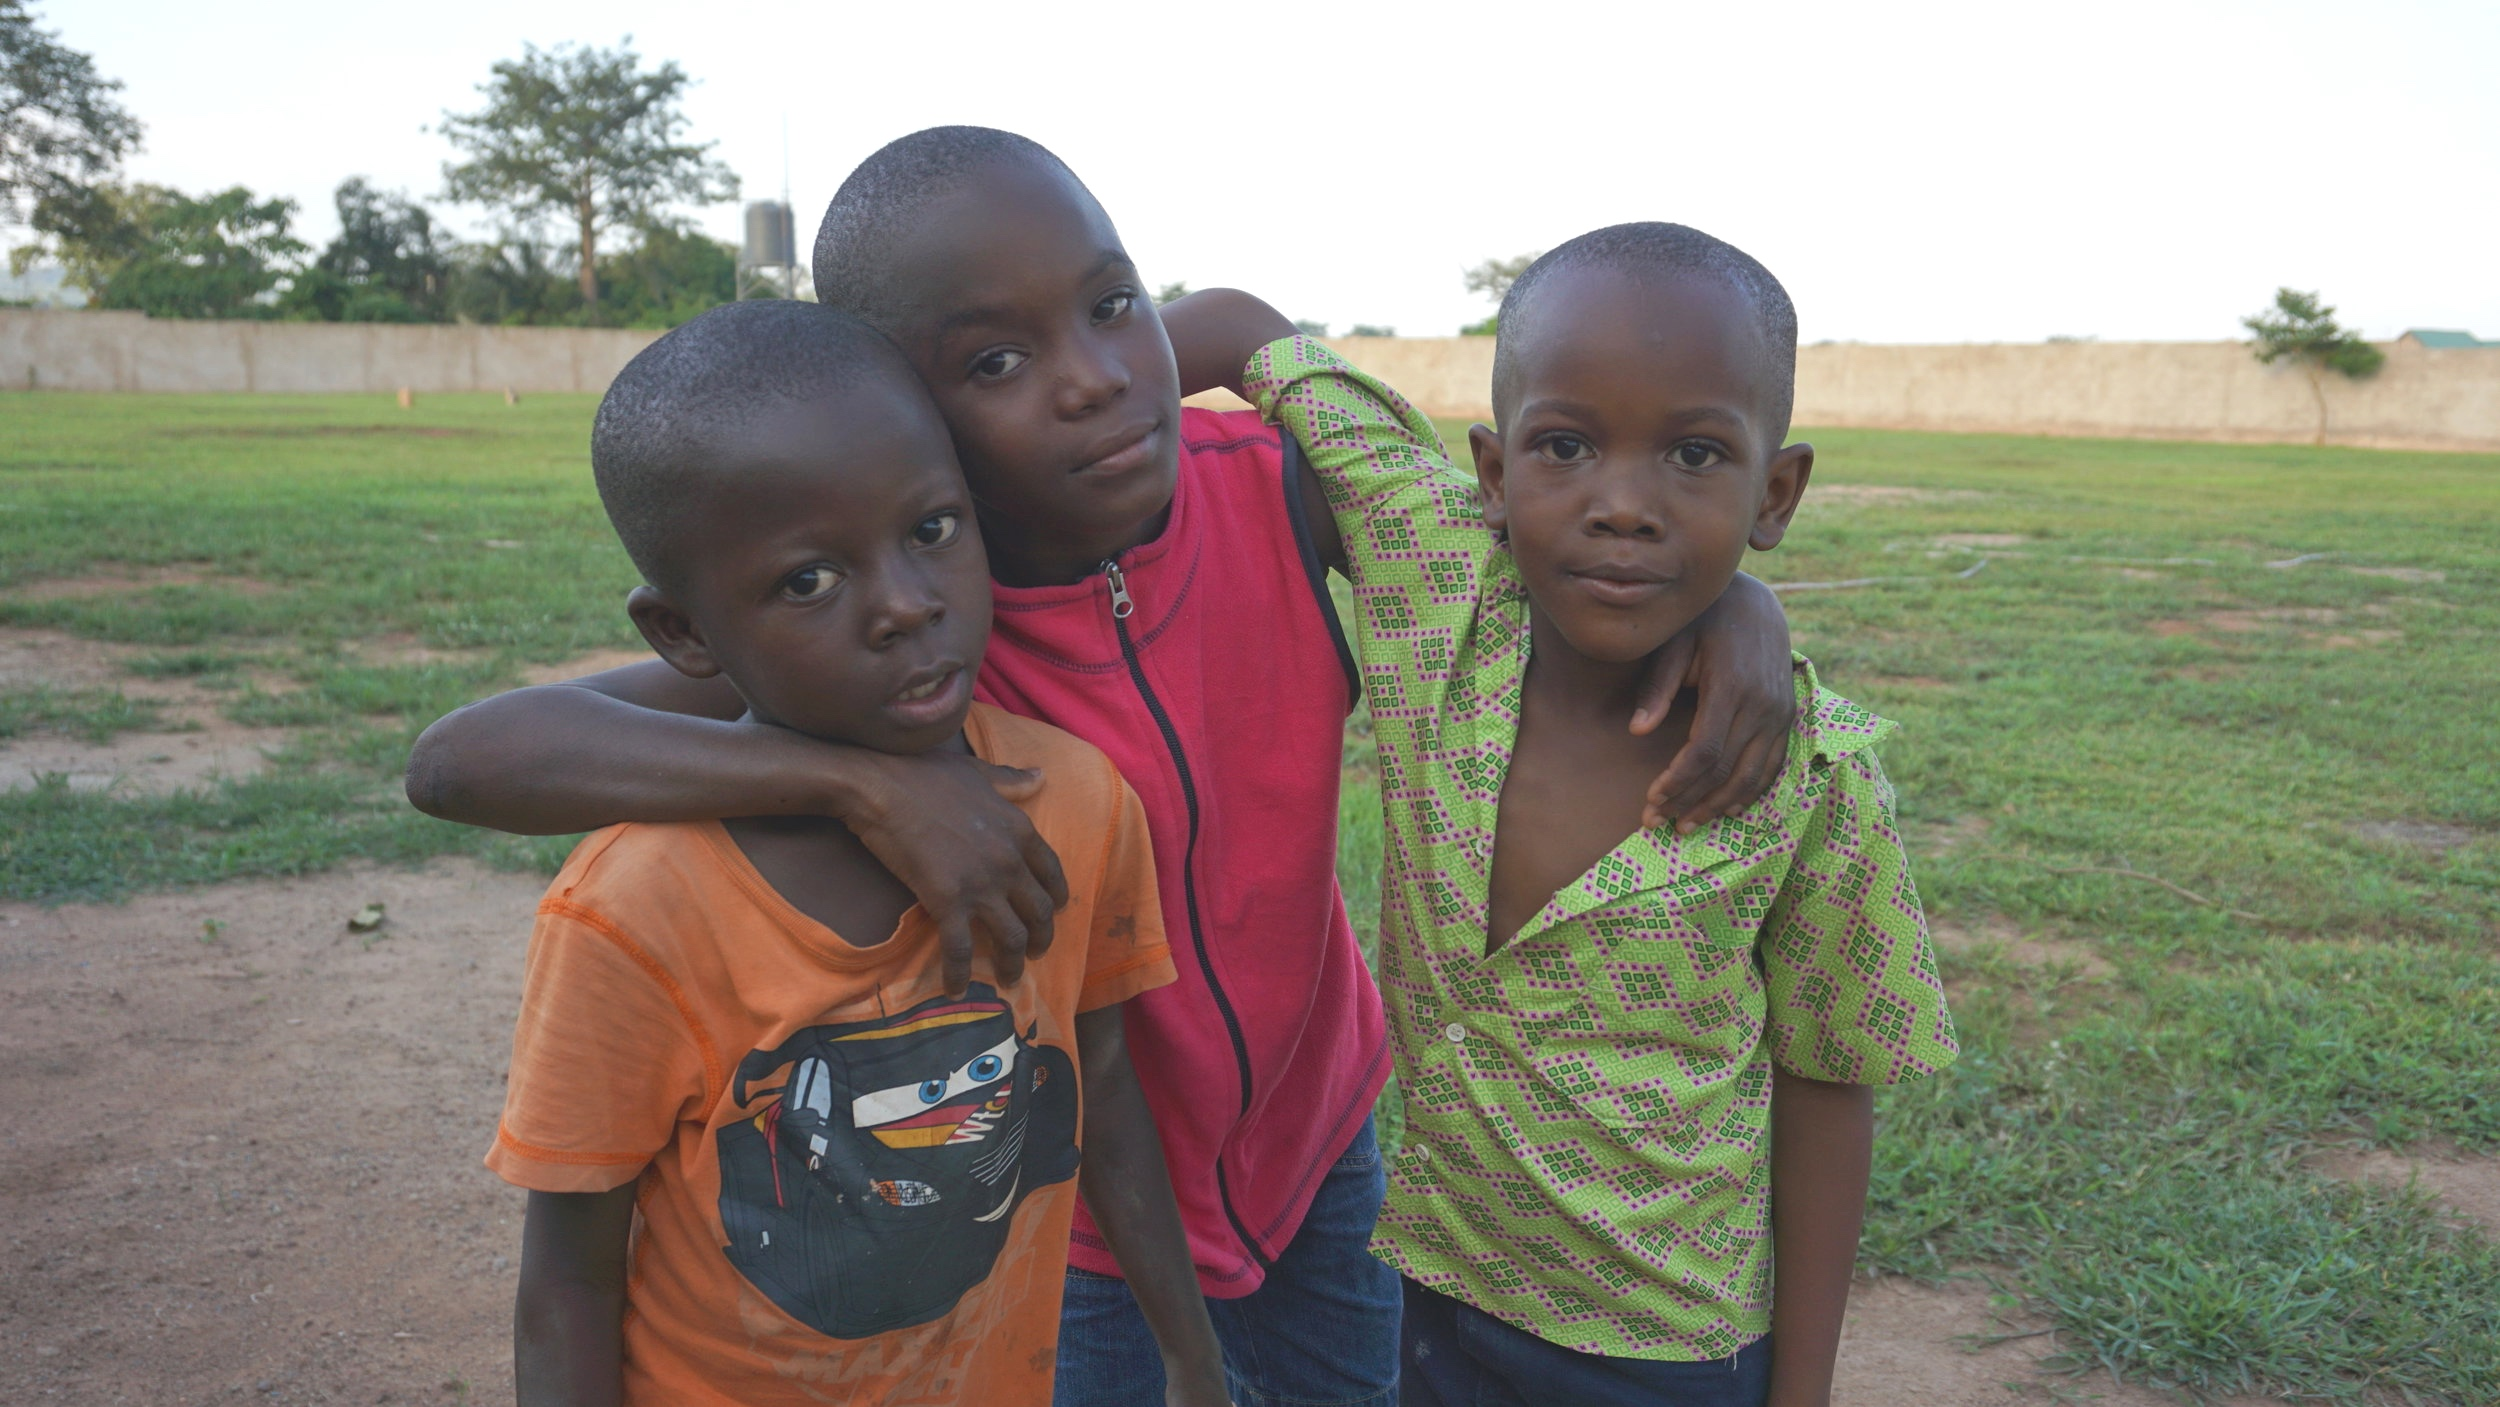 ORPHAN SUPPORT - Provide basic needs for a child.